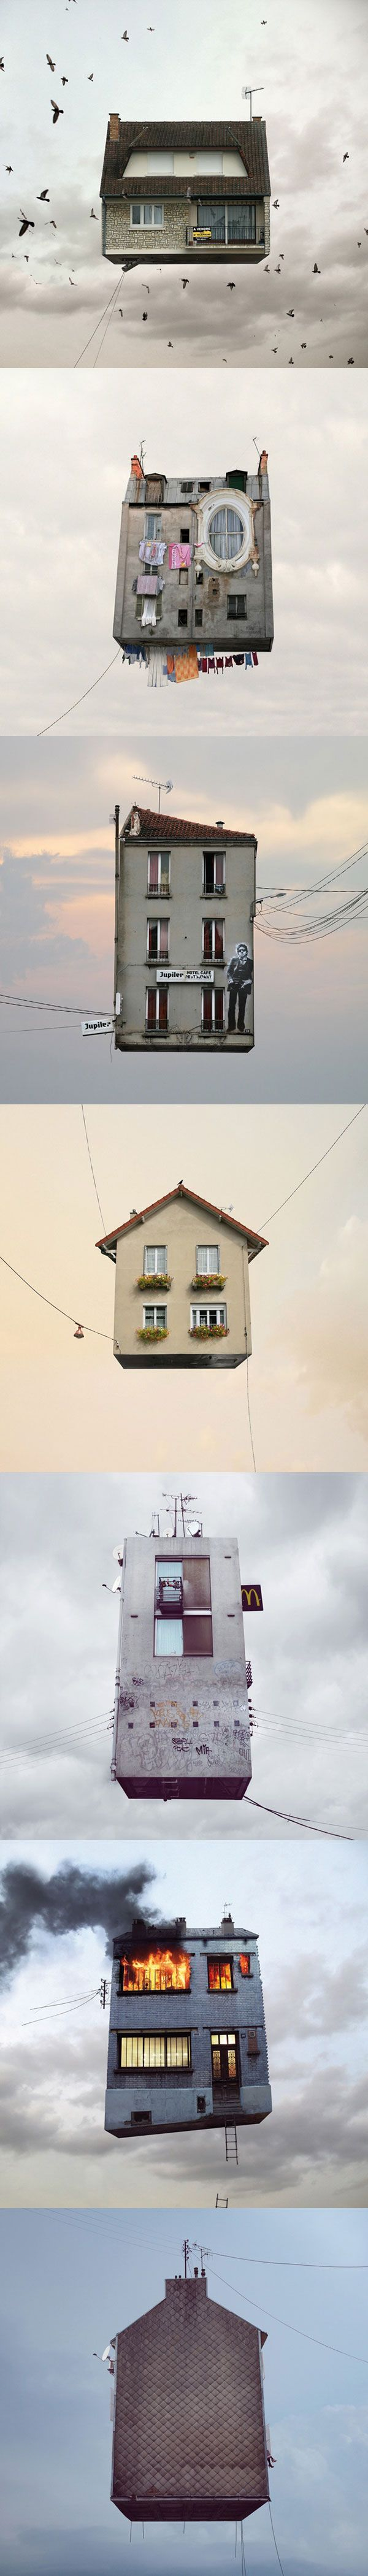 Une très belle série de photomanipulations de Laurent Chechere : « Flying Houses »